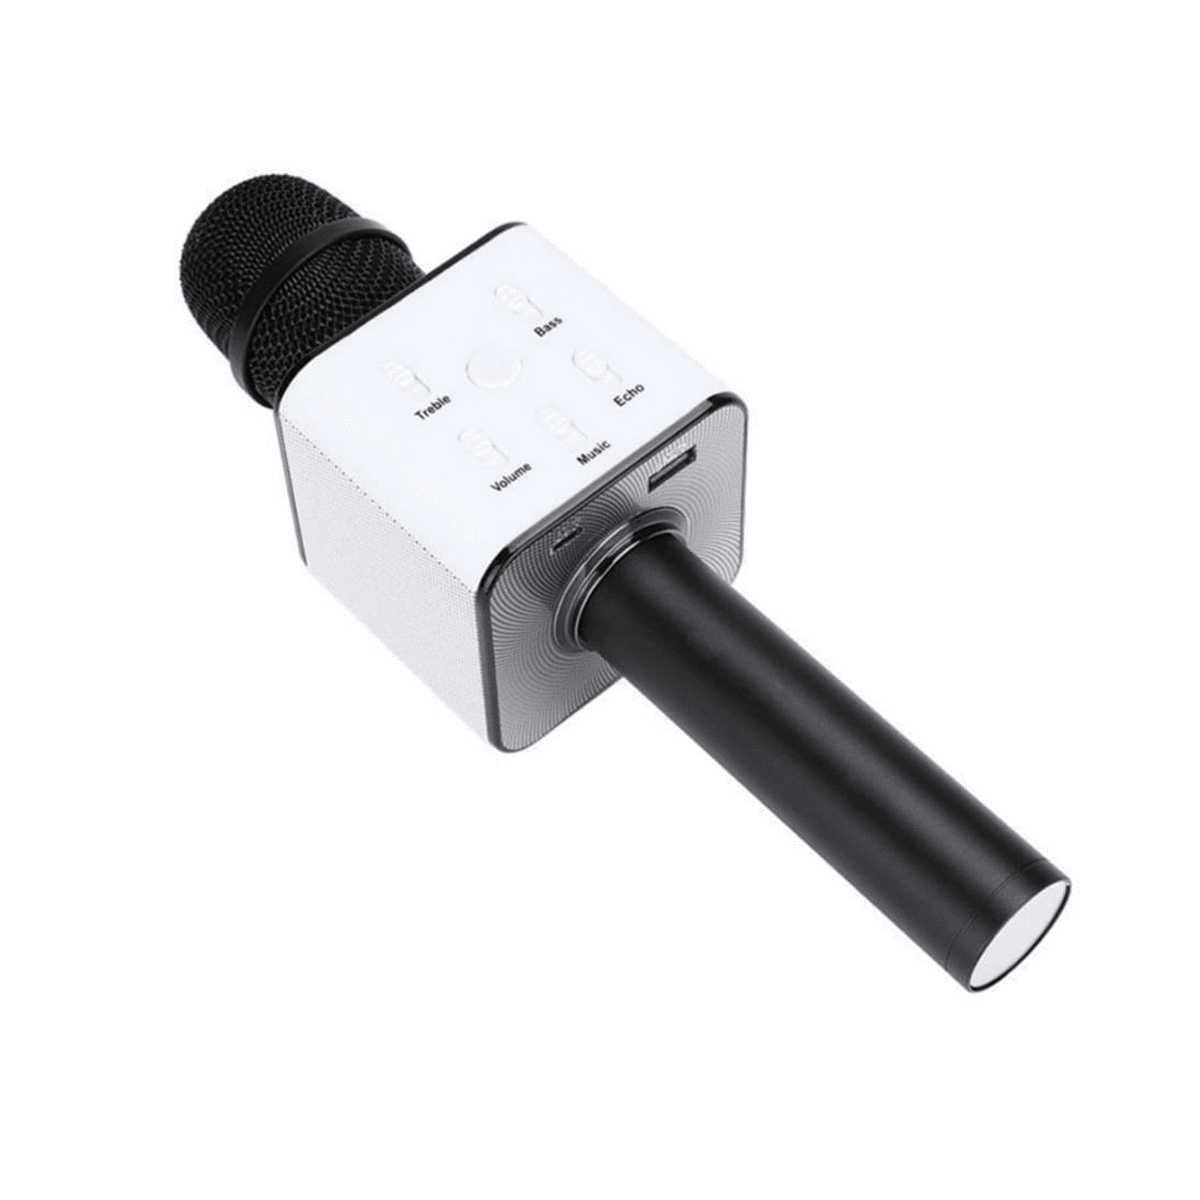 TUXUN Q7 Wireless Microphone & HIFI Speaker.